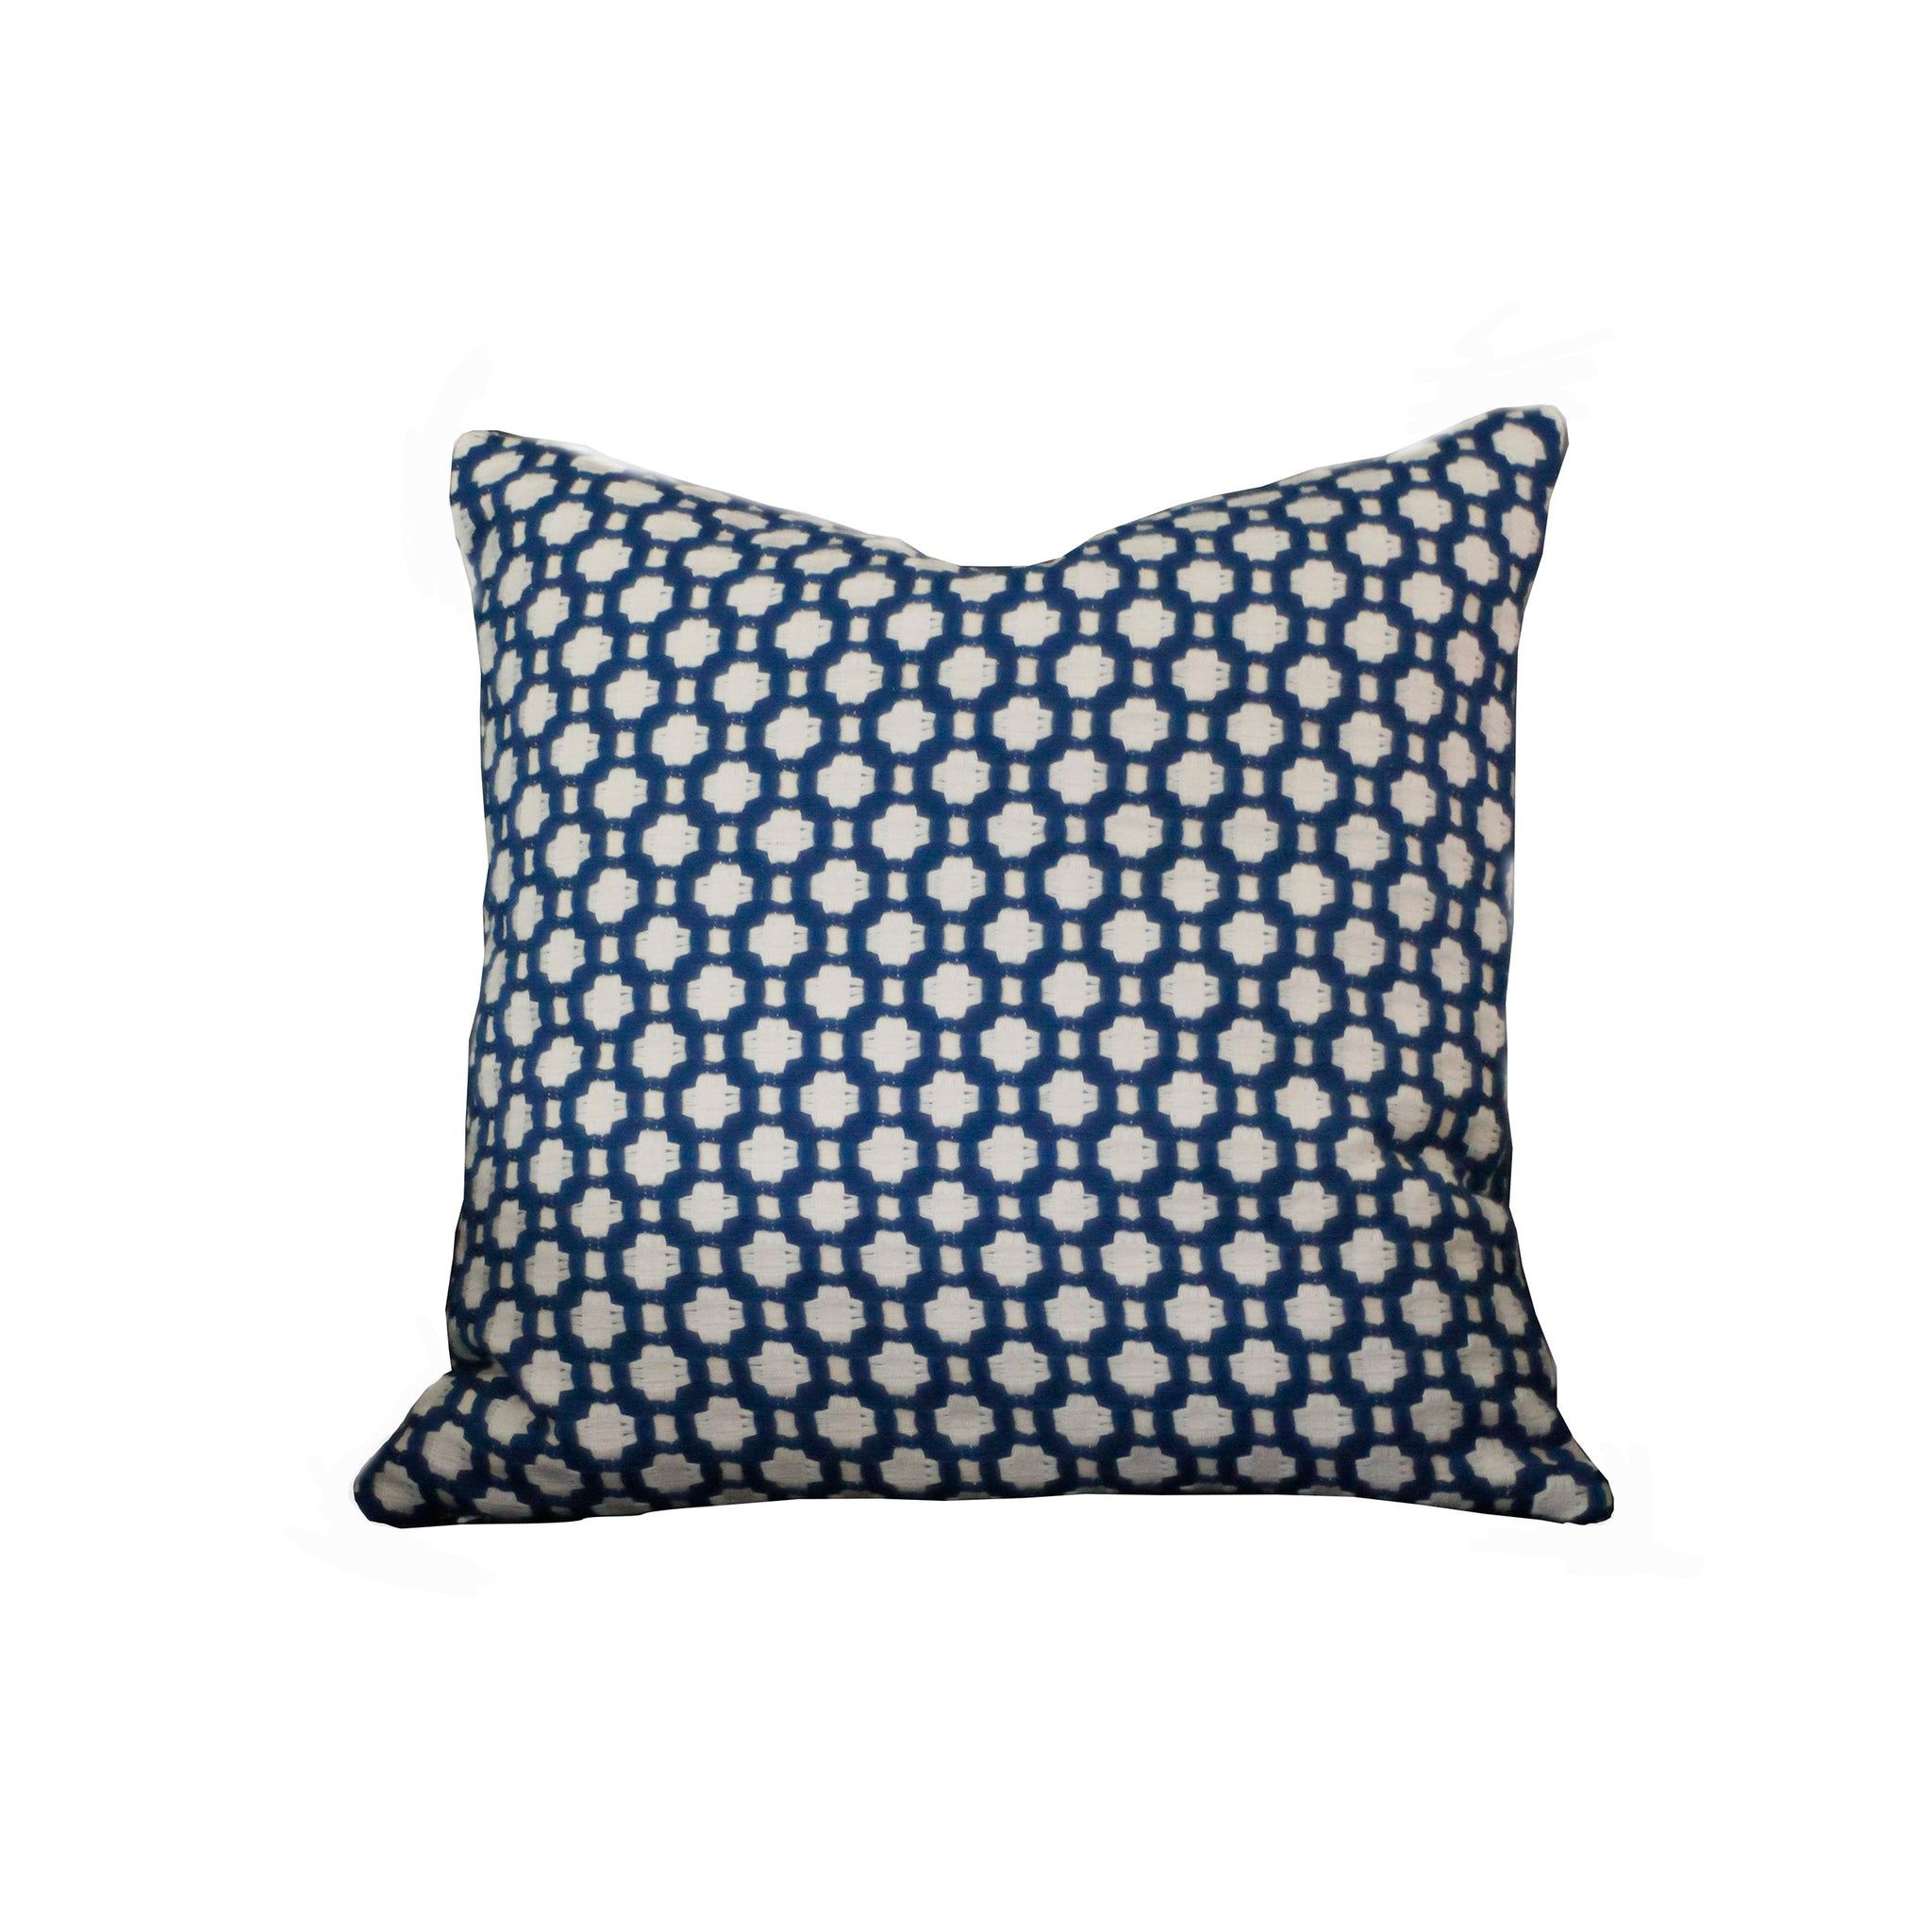 Hawthorne House Bespoke 18 x 18 Betwixt Pillow